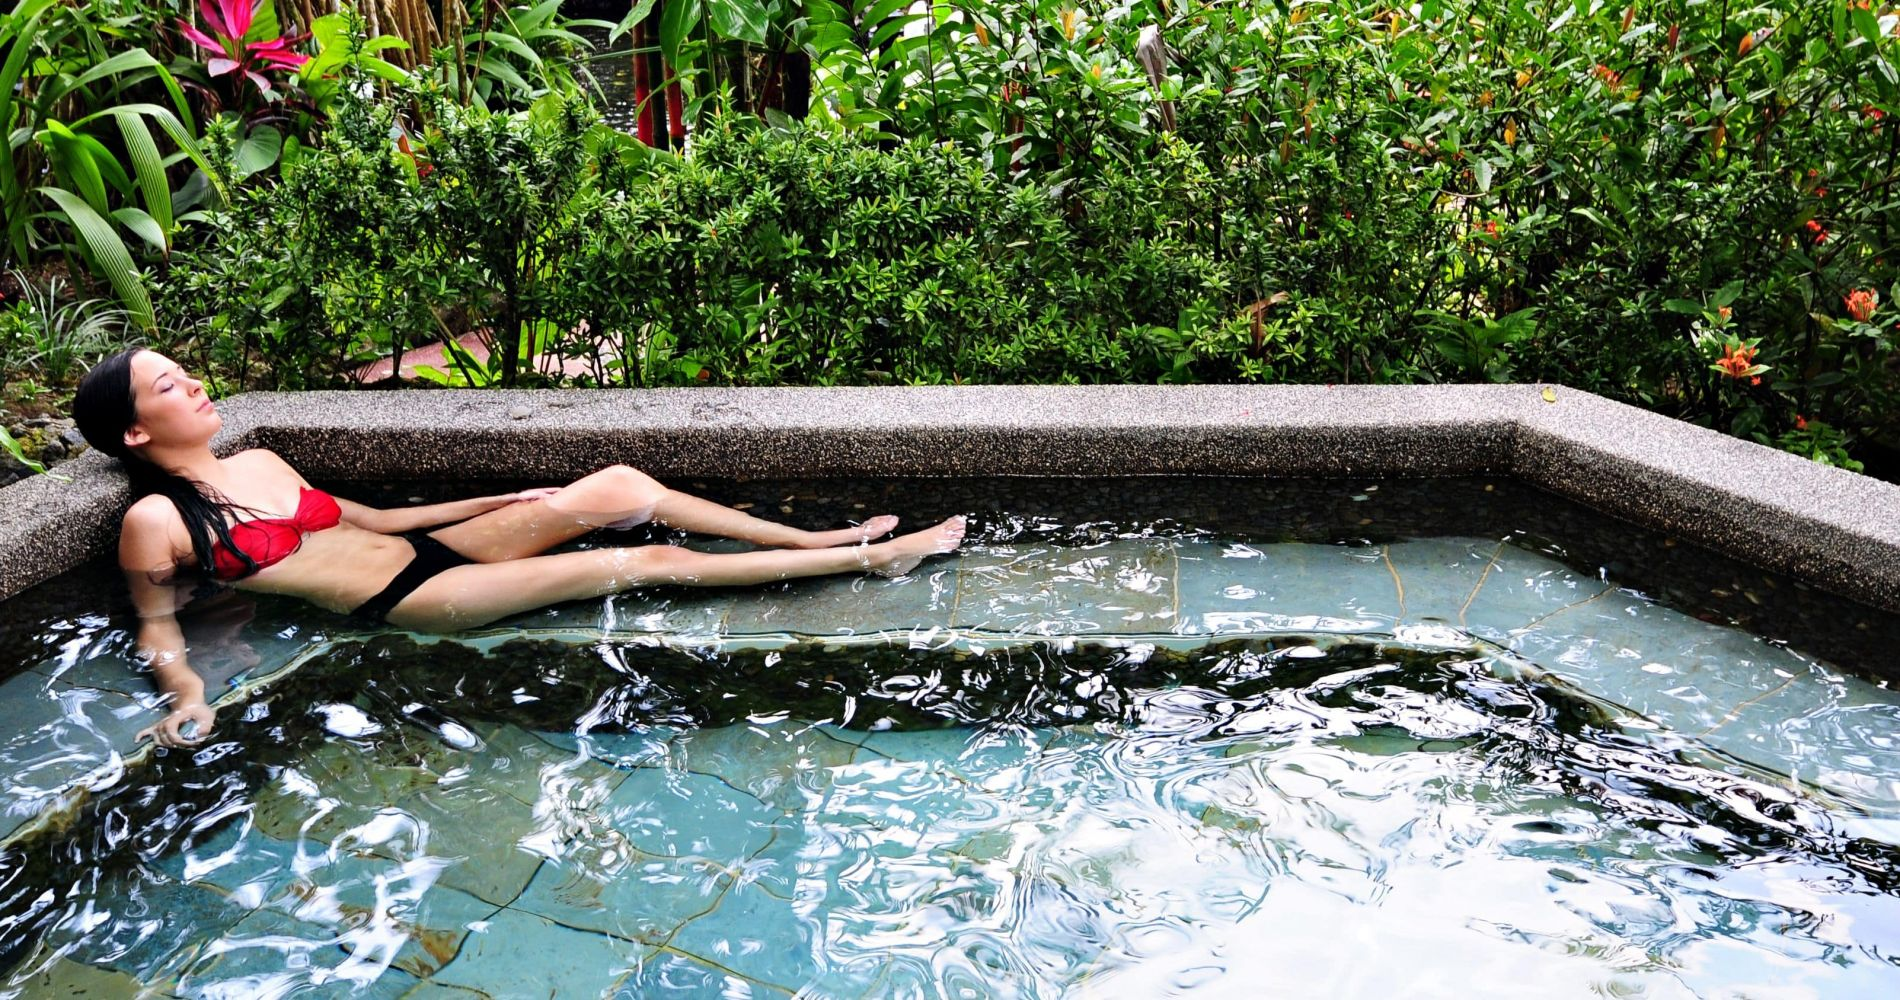 Full Day Pass to Thermal Spa in Costa Rica for Two